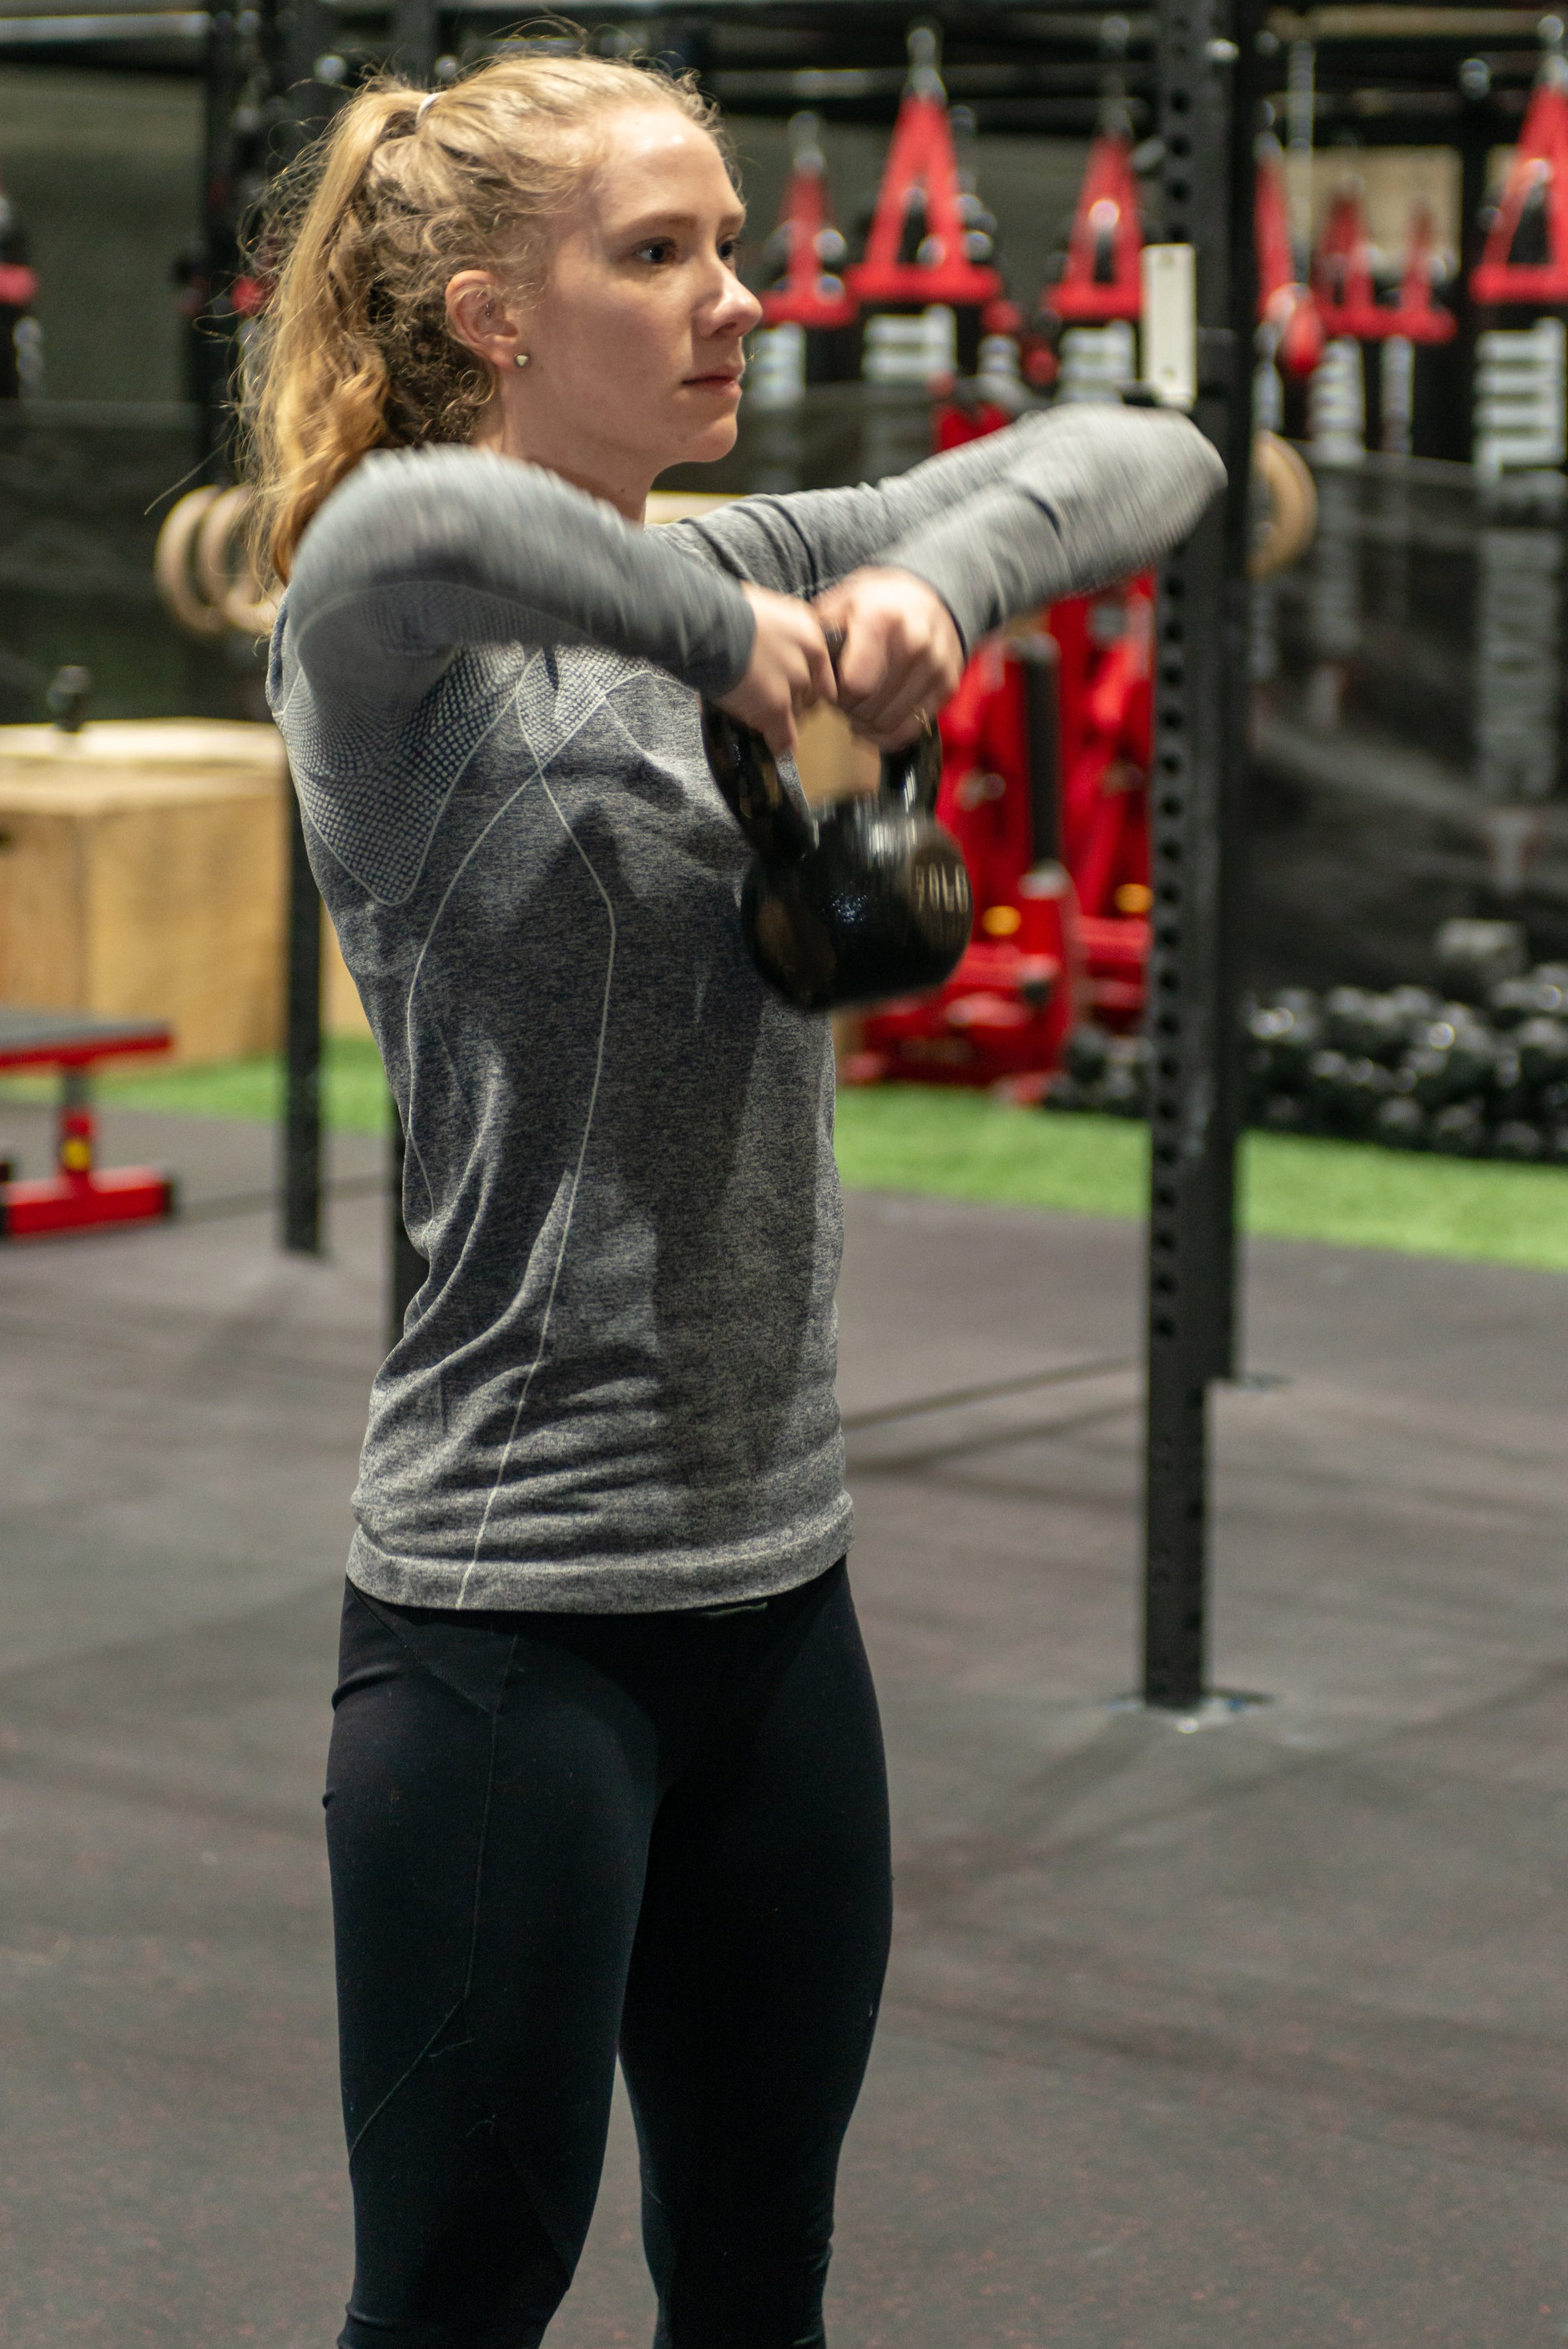 Kayleigh Boose - CrossFit Level 1 Trainer Kayleigh has been doing CrossFit for 5 years and has a Masters Degree in science communication and outreach. Kayleigh has been teaching STEM in schools for 4 years.